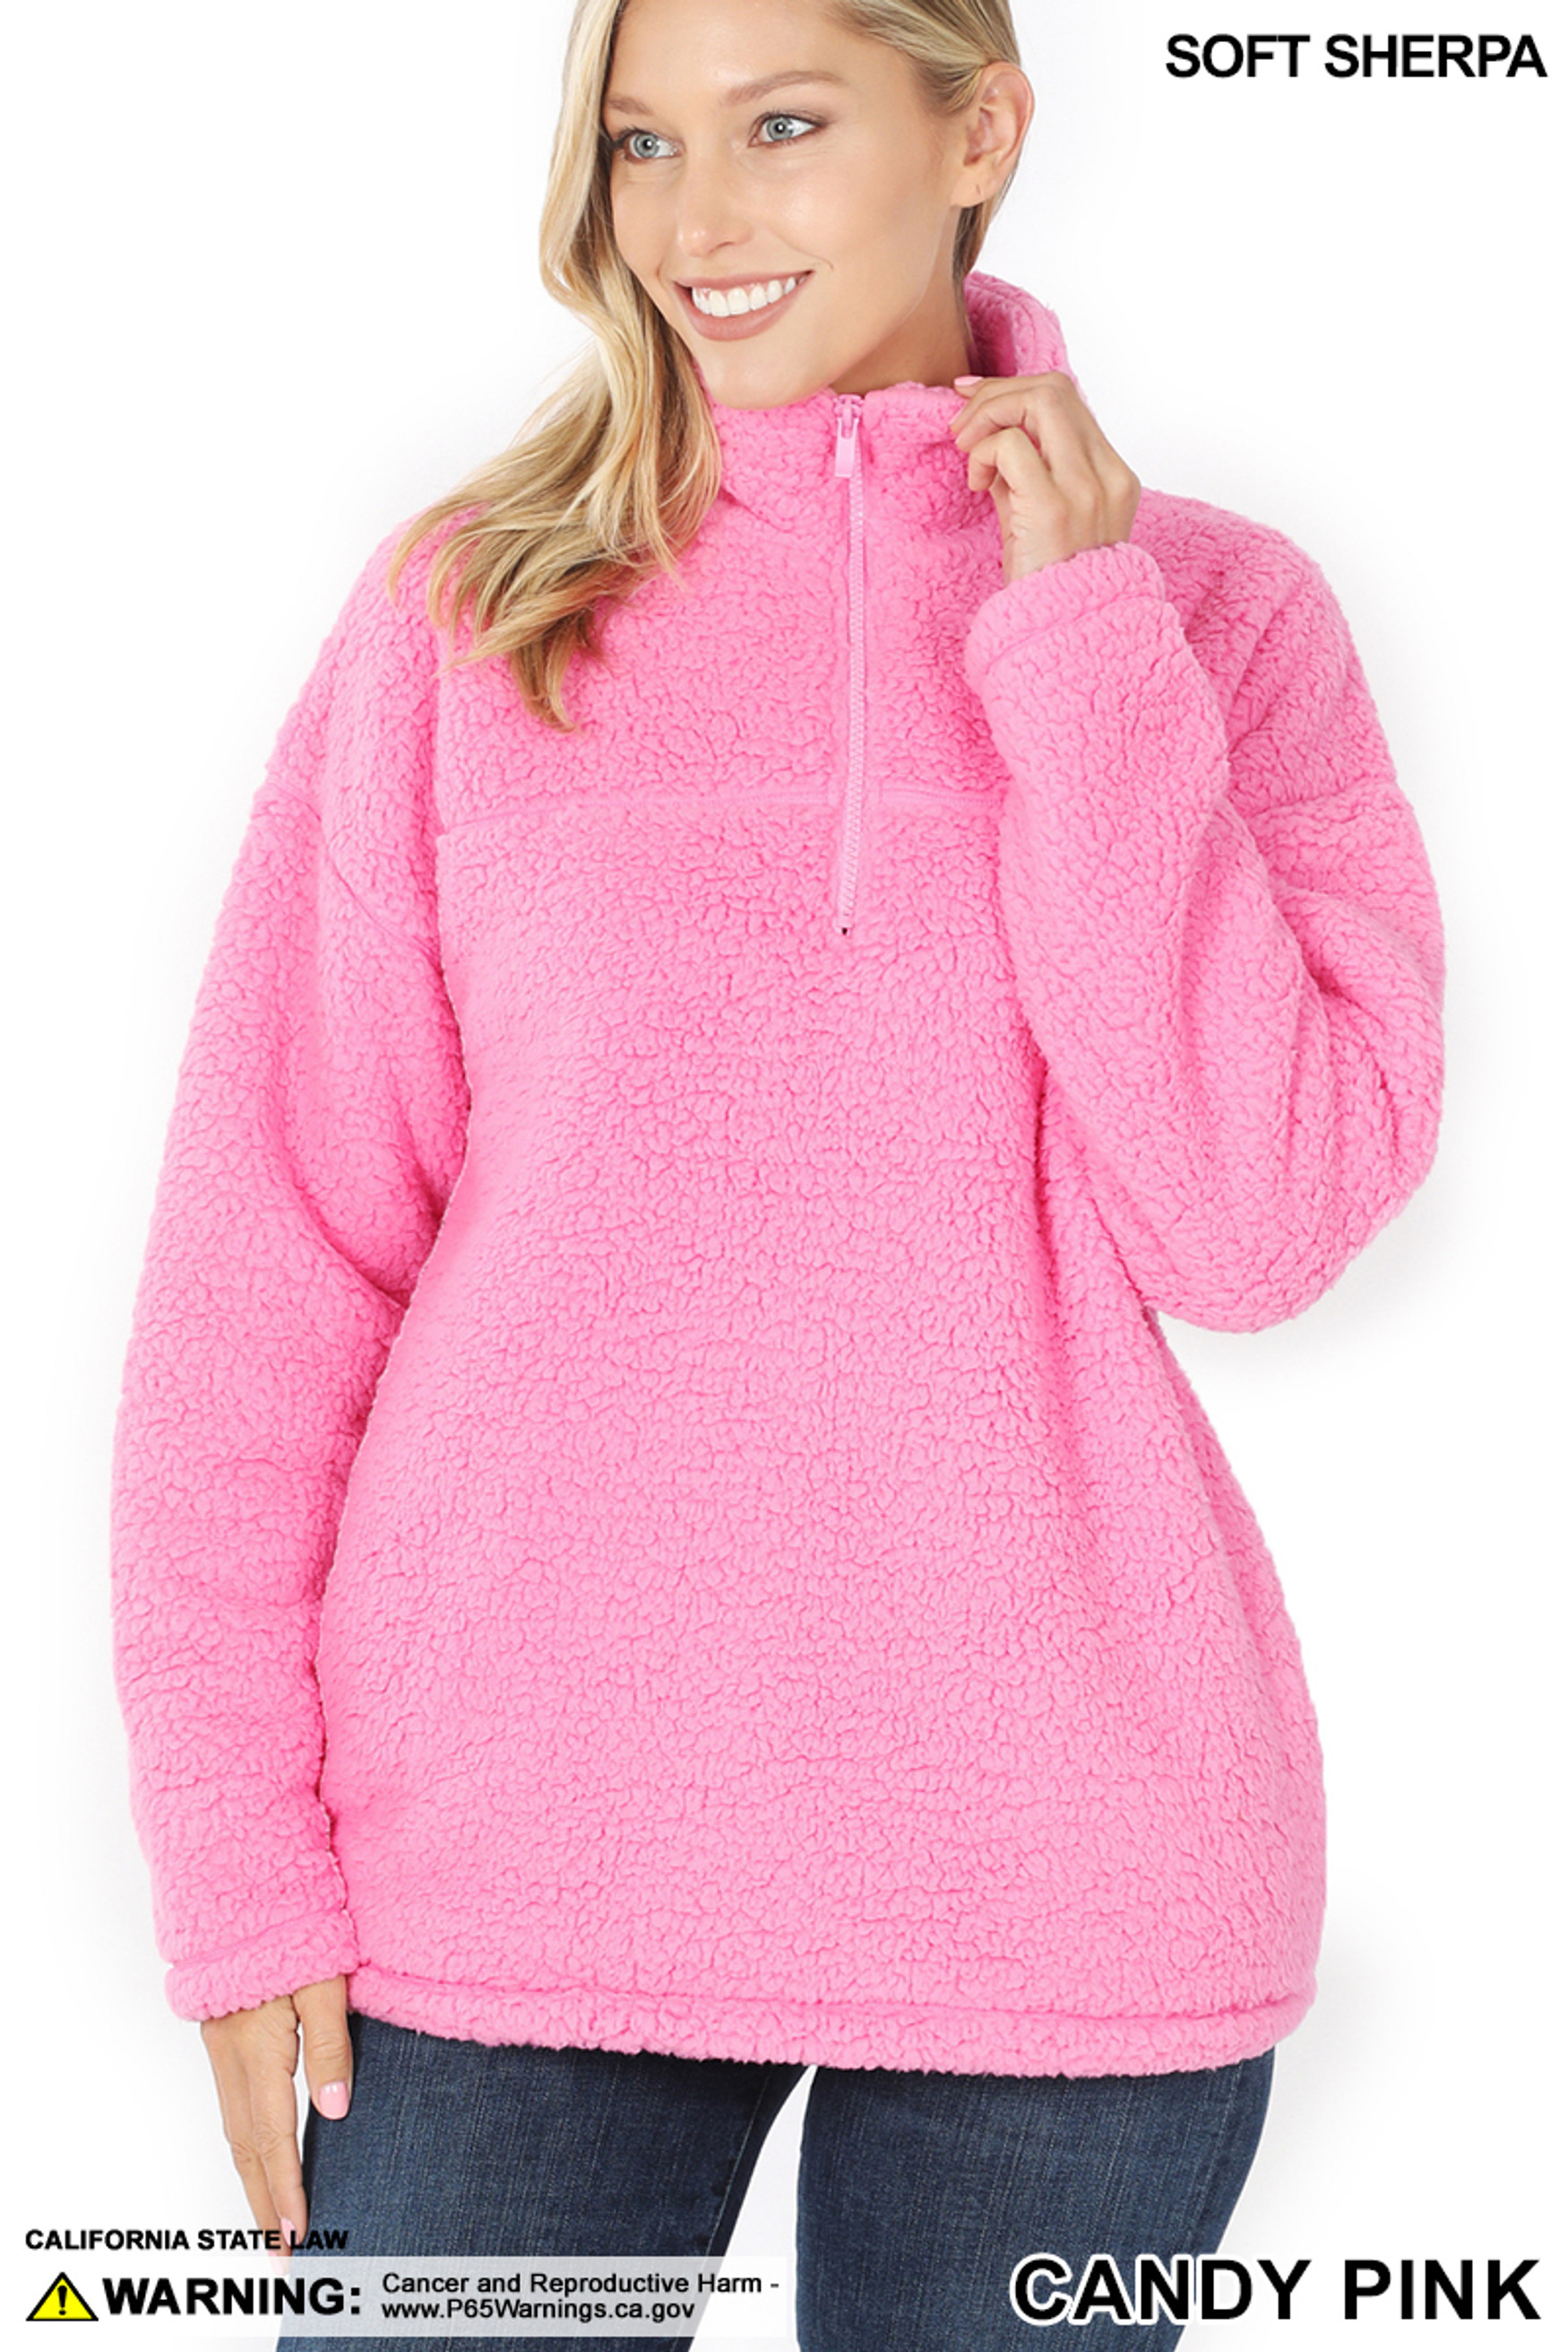 Front image of Candy Pink Sherpa Half Zip Pullover with Side Pockets